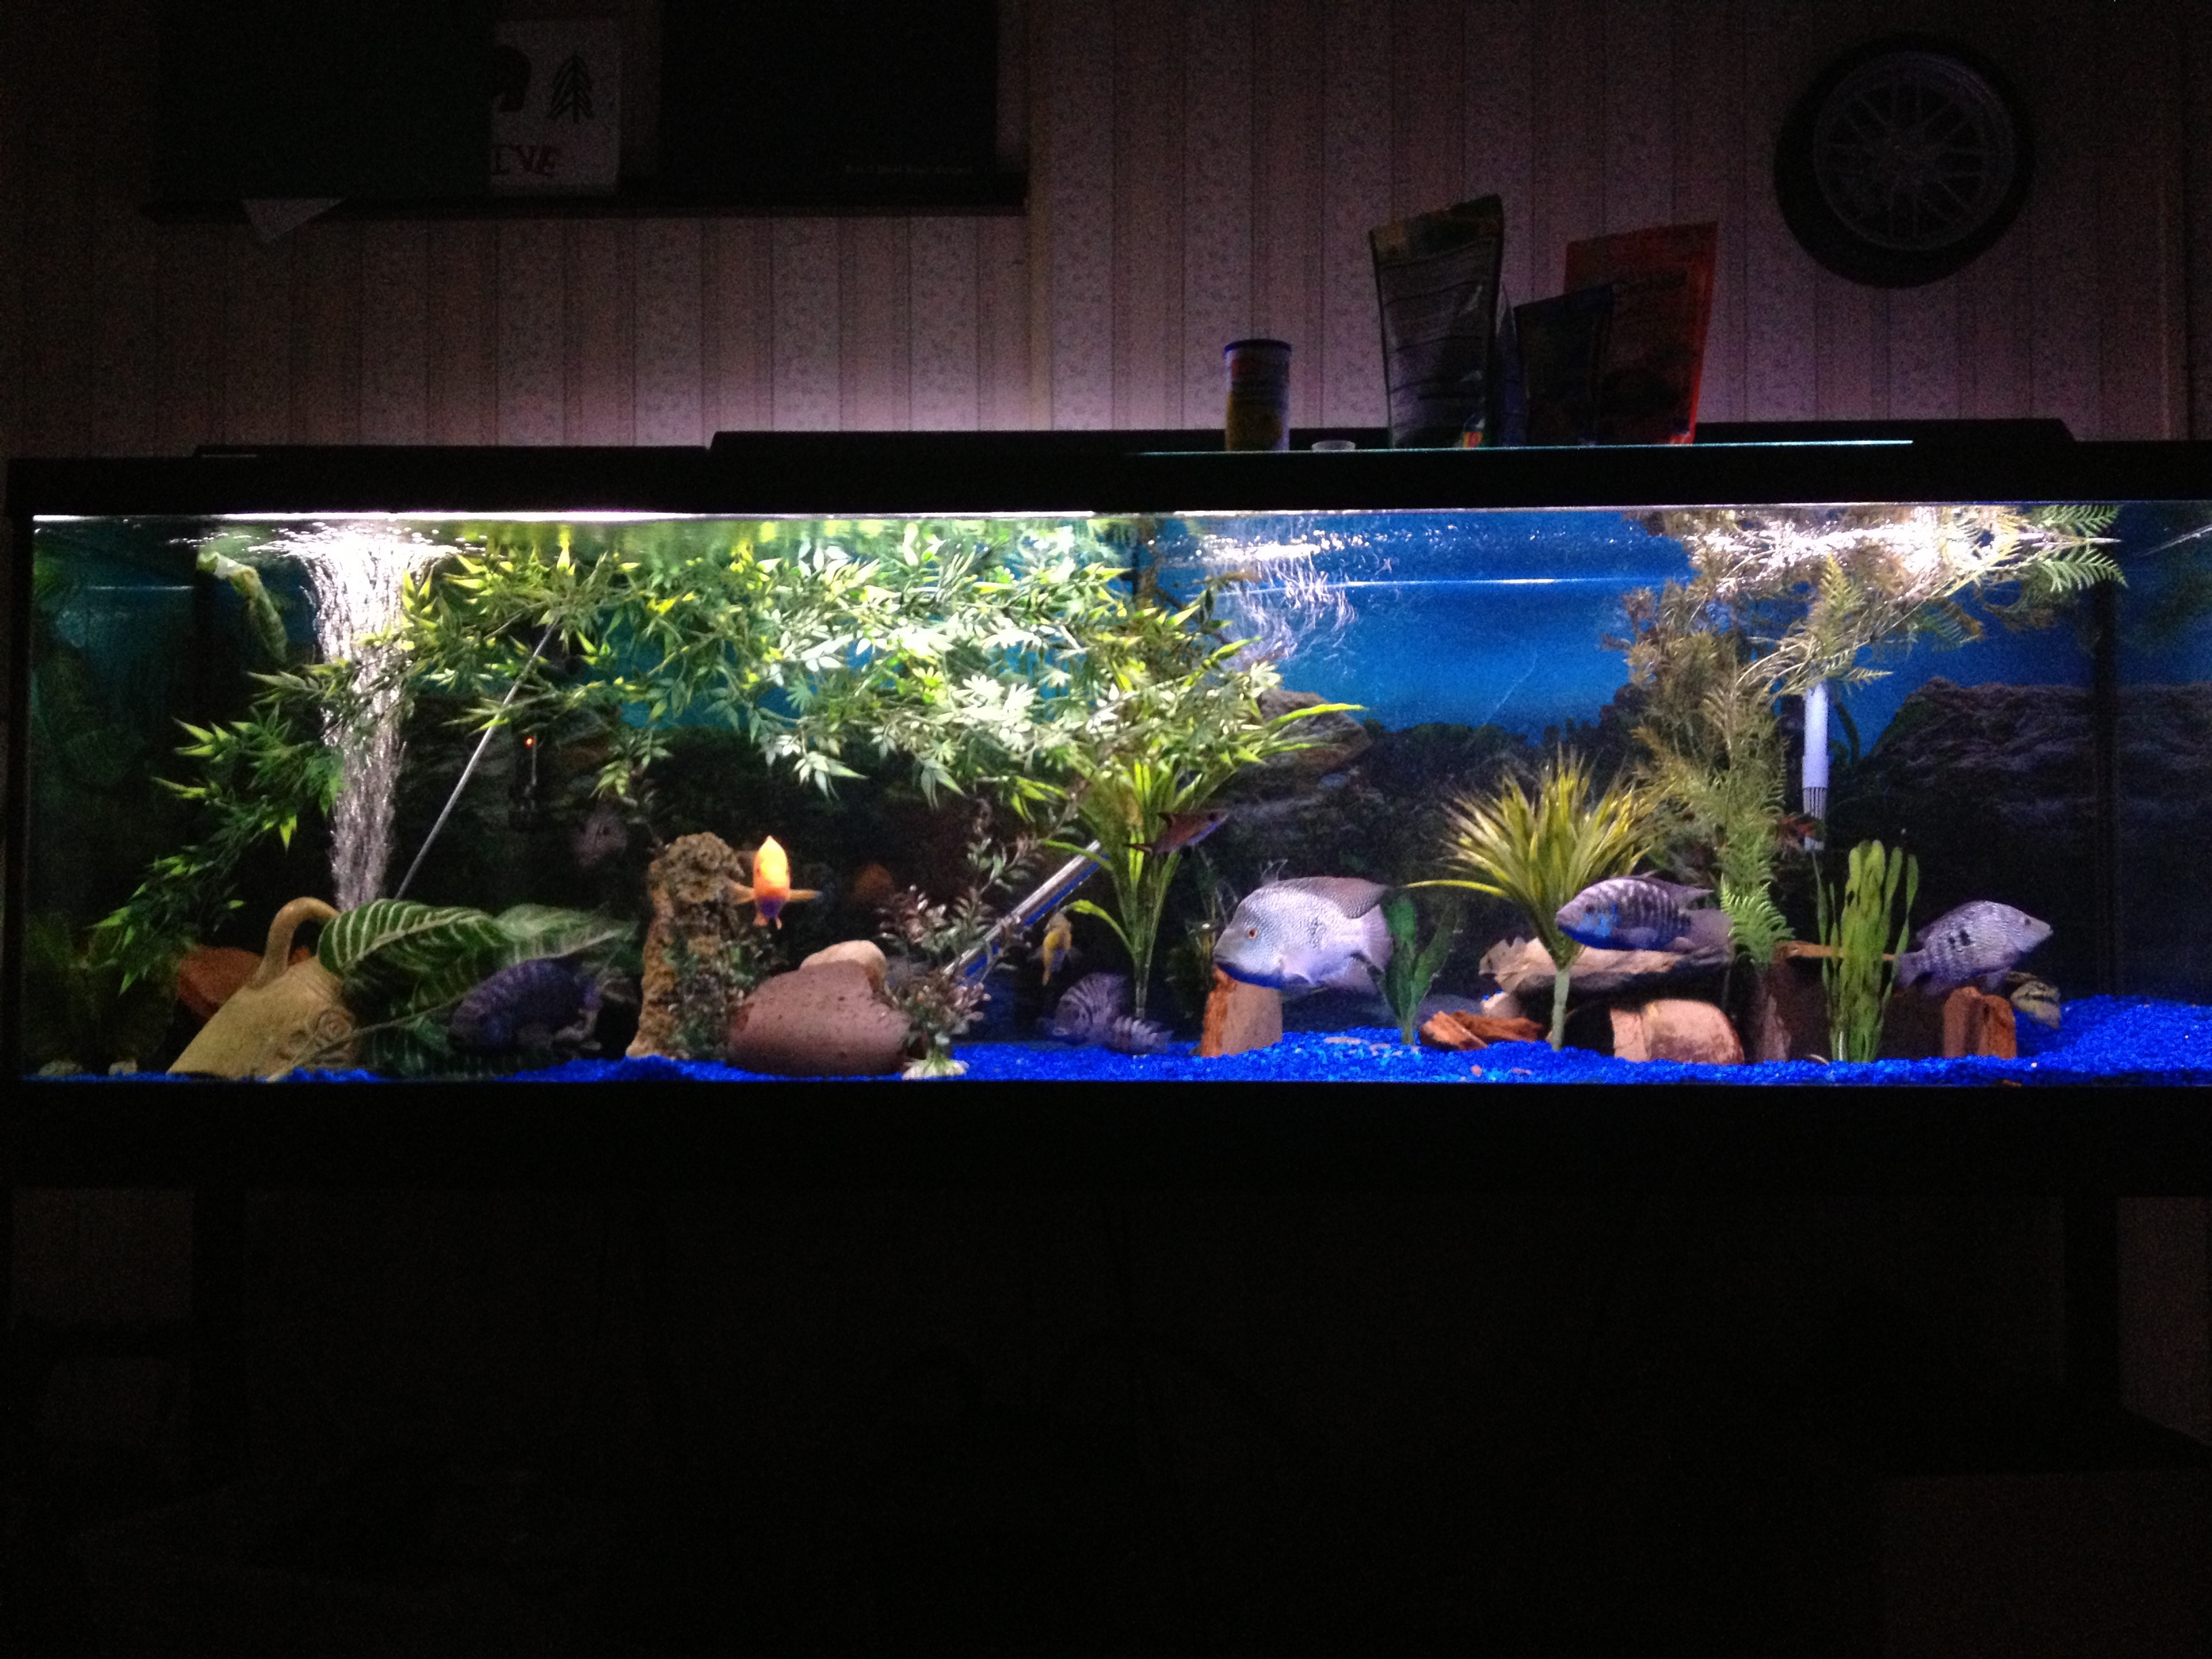 Alimentacao in addition 501447739730975488 likewise Oscar Fish Pictures moreover 125 Gallon Aquarium 1 besides Watch. on oscar fish big